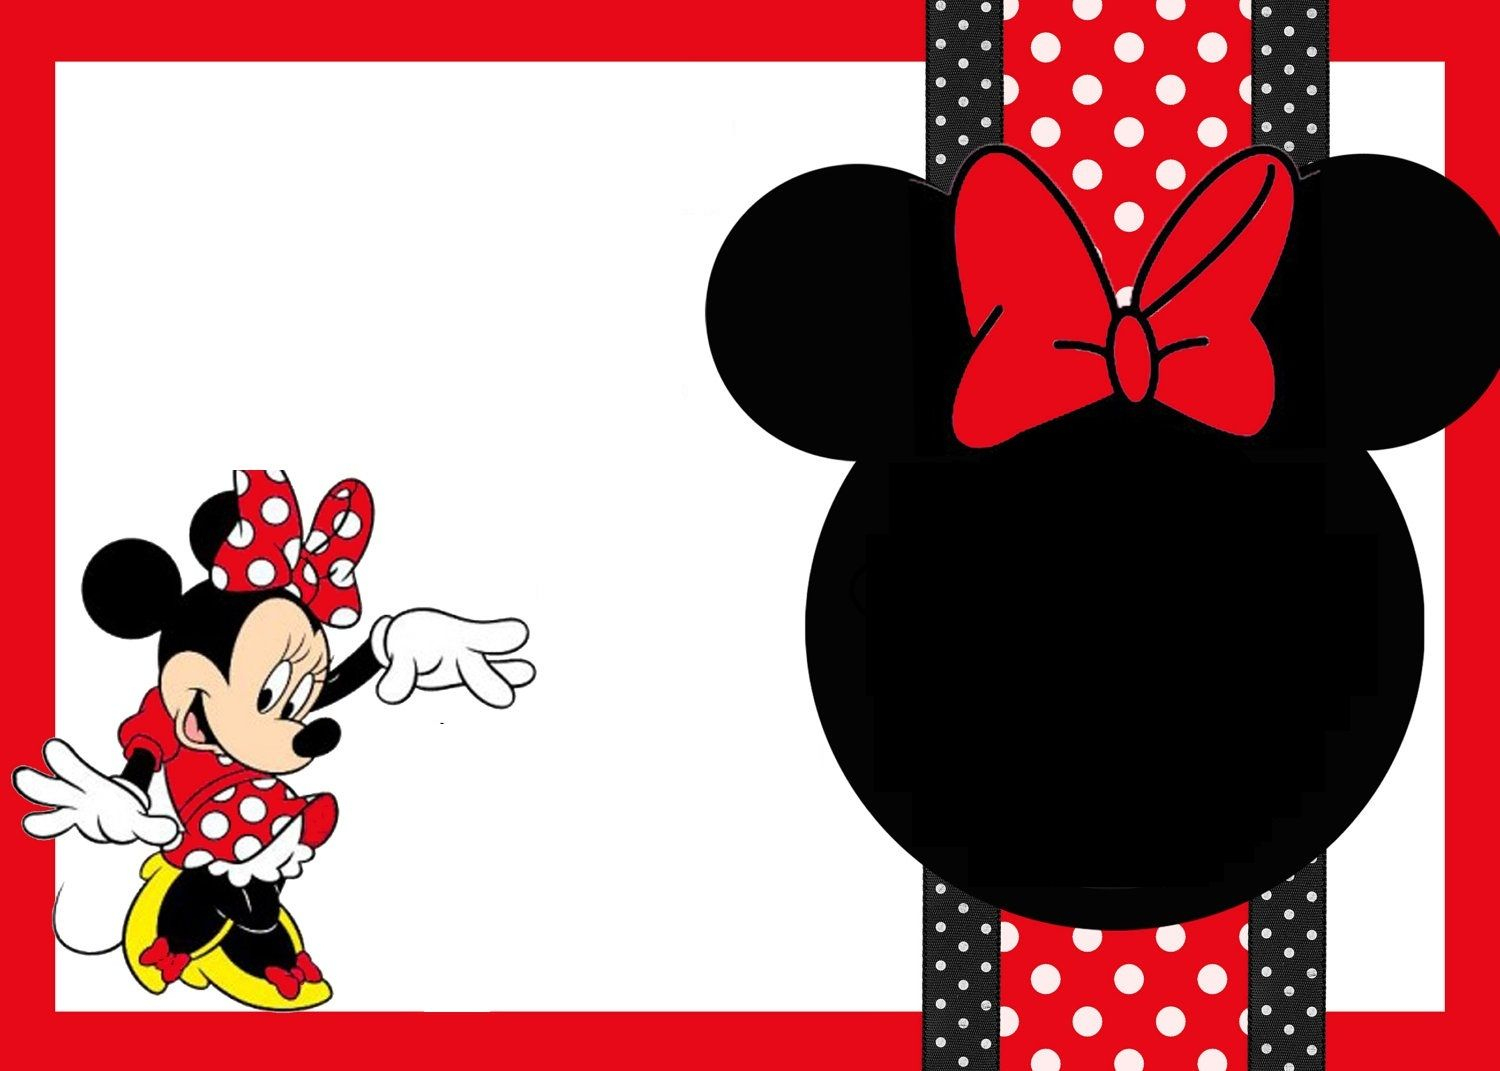 Free Printable Mickey Mouse Birthday Cards   Luxury Lifestyle - Free Printable Mickey Mouse Favor Tags